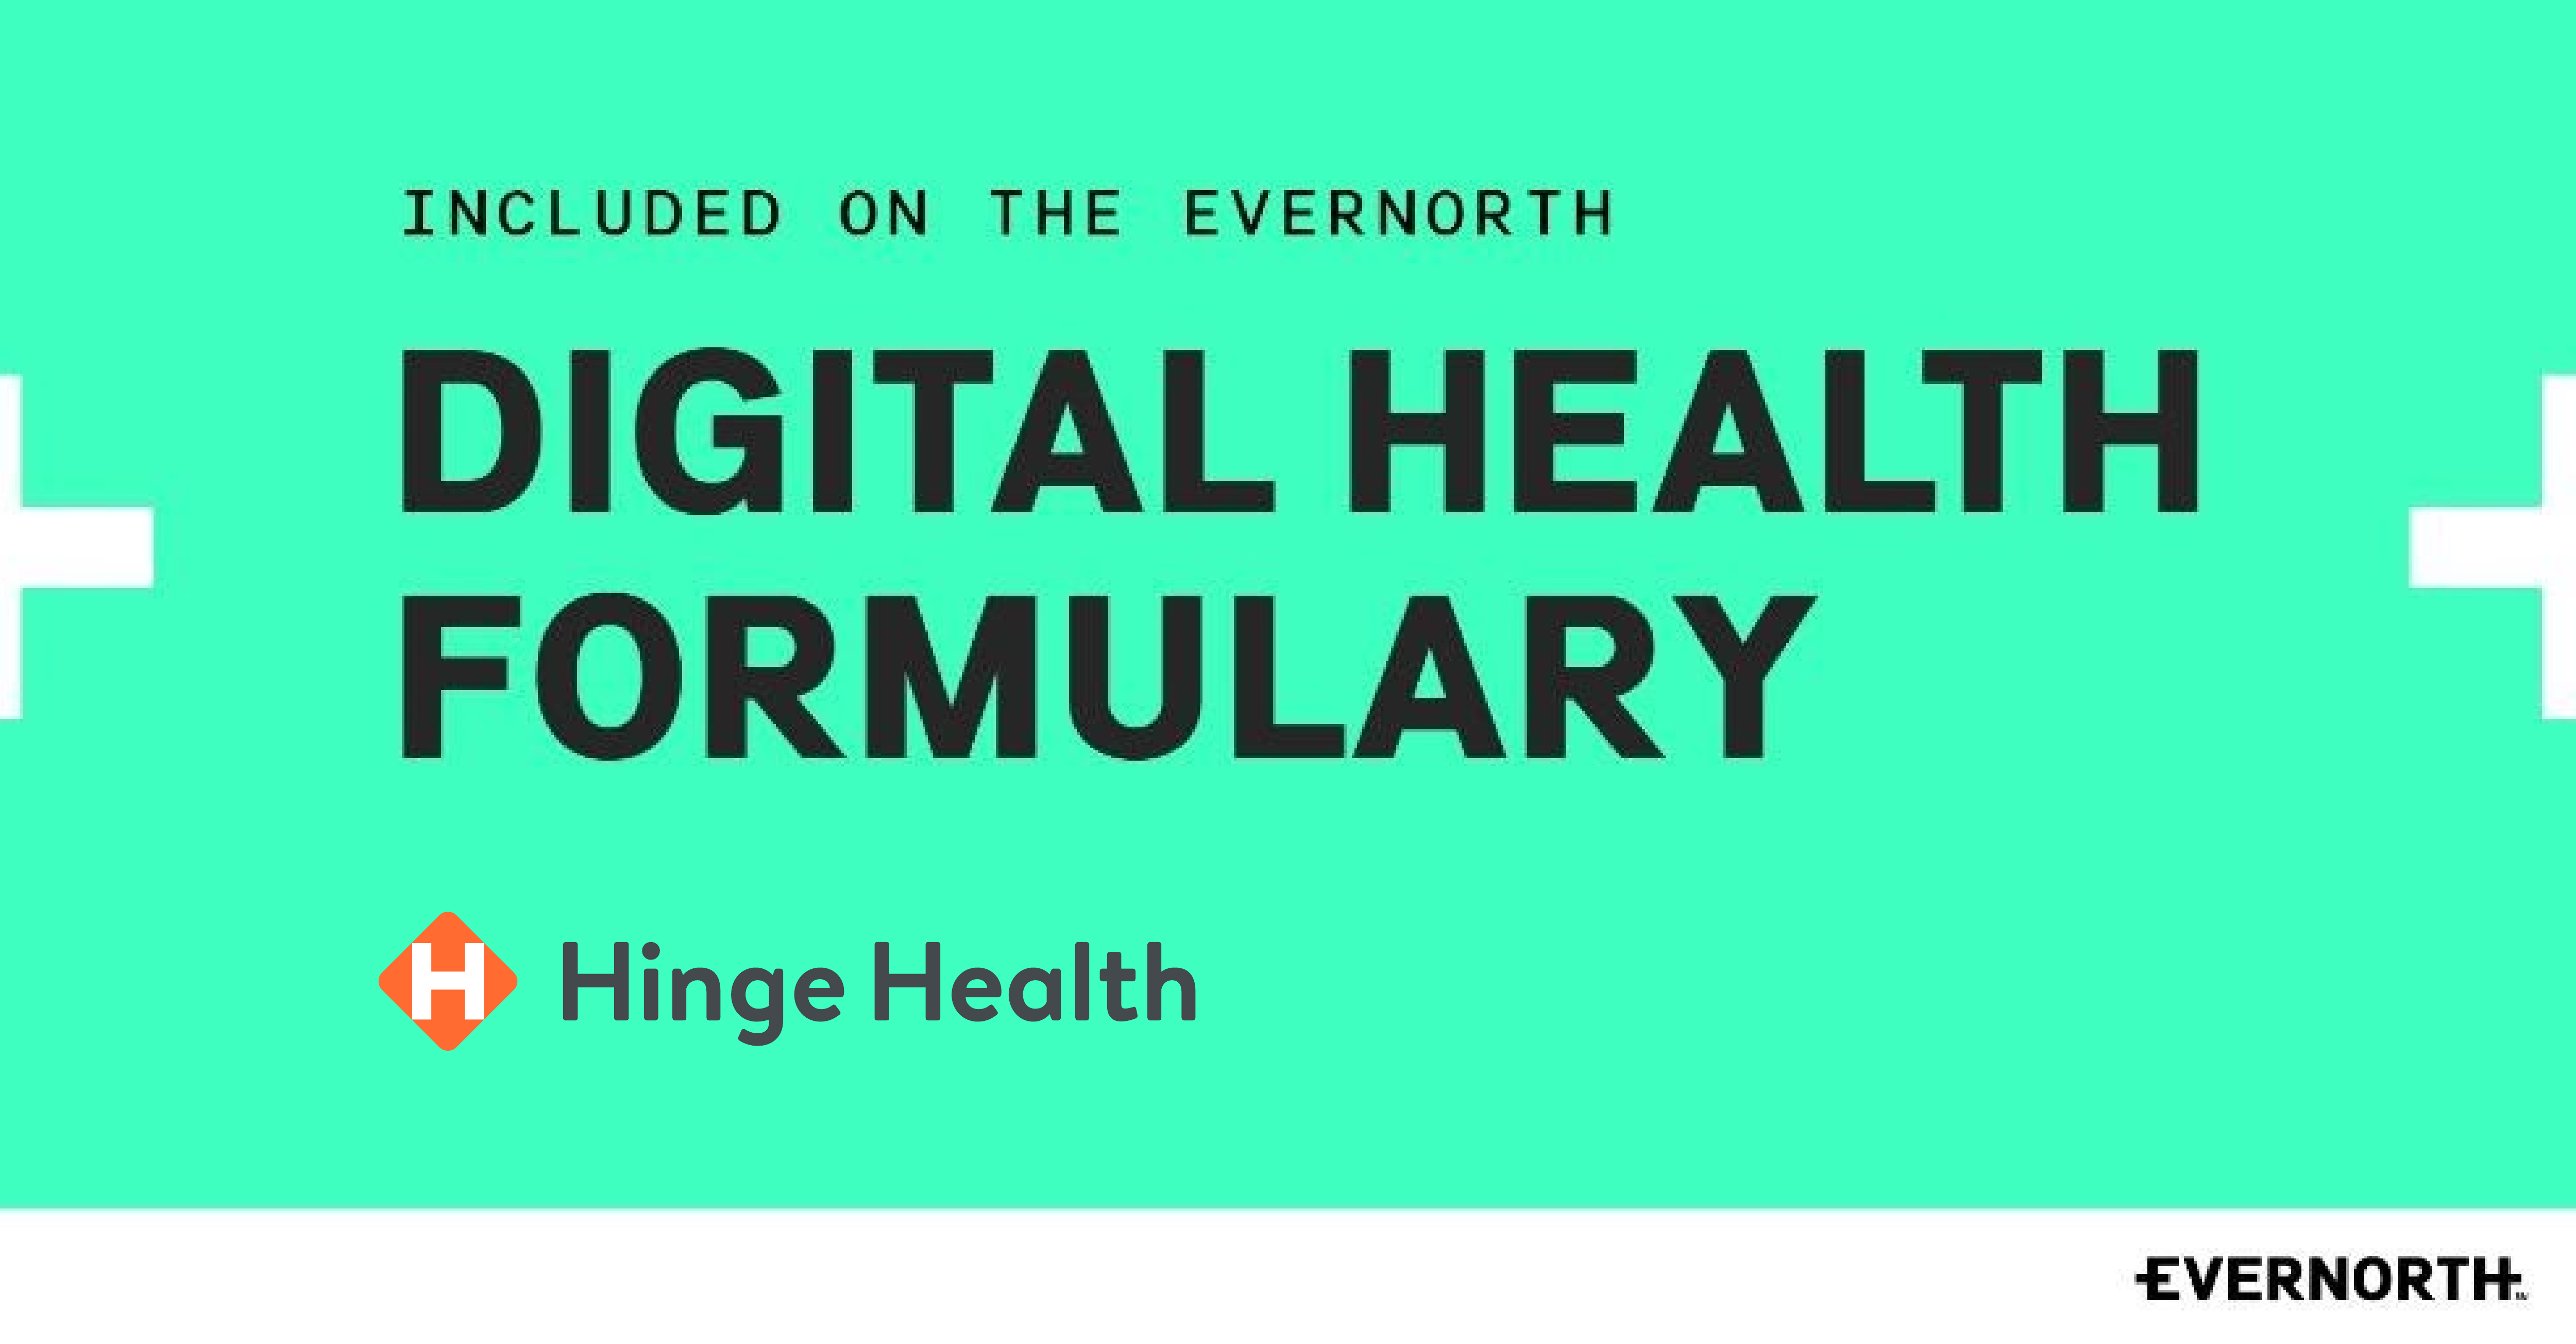 Evernorth Hinge Health